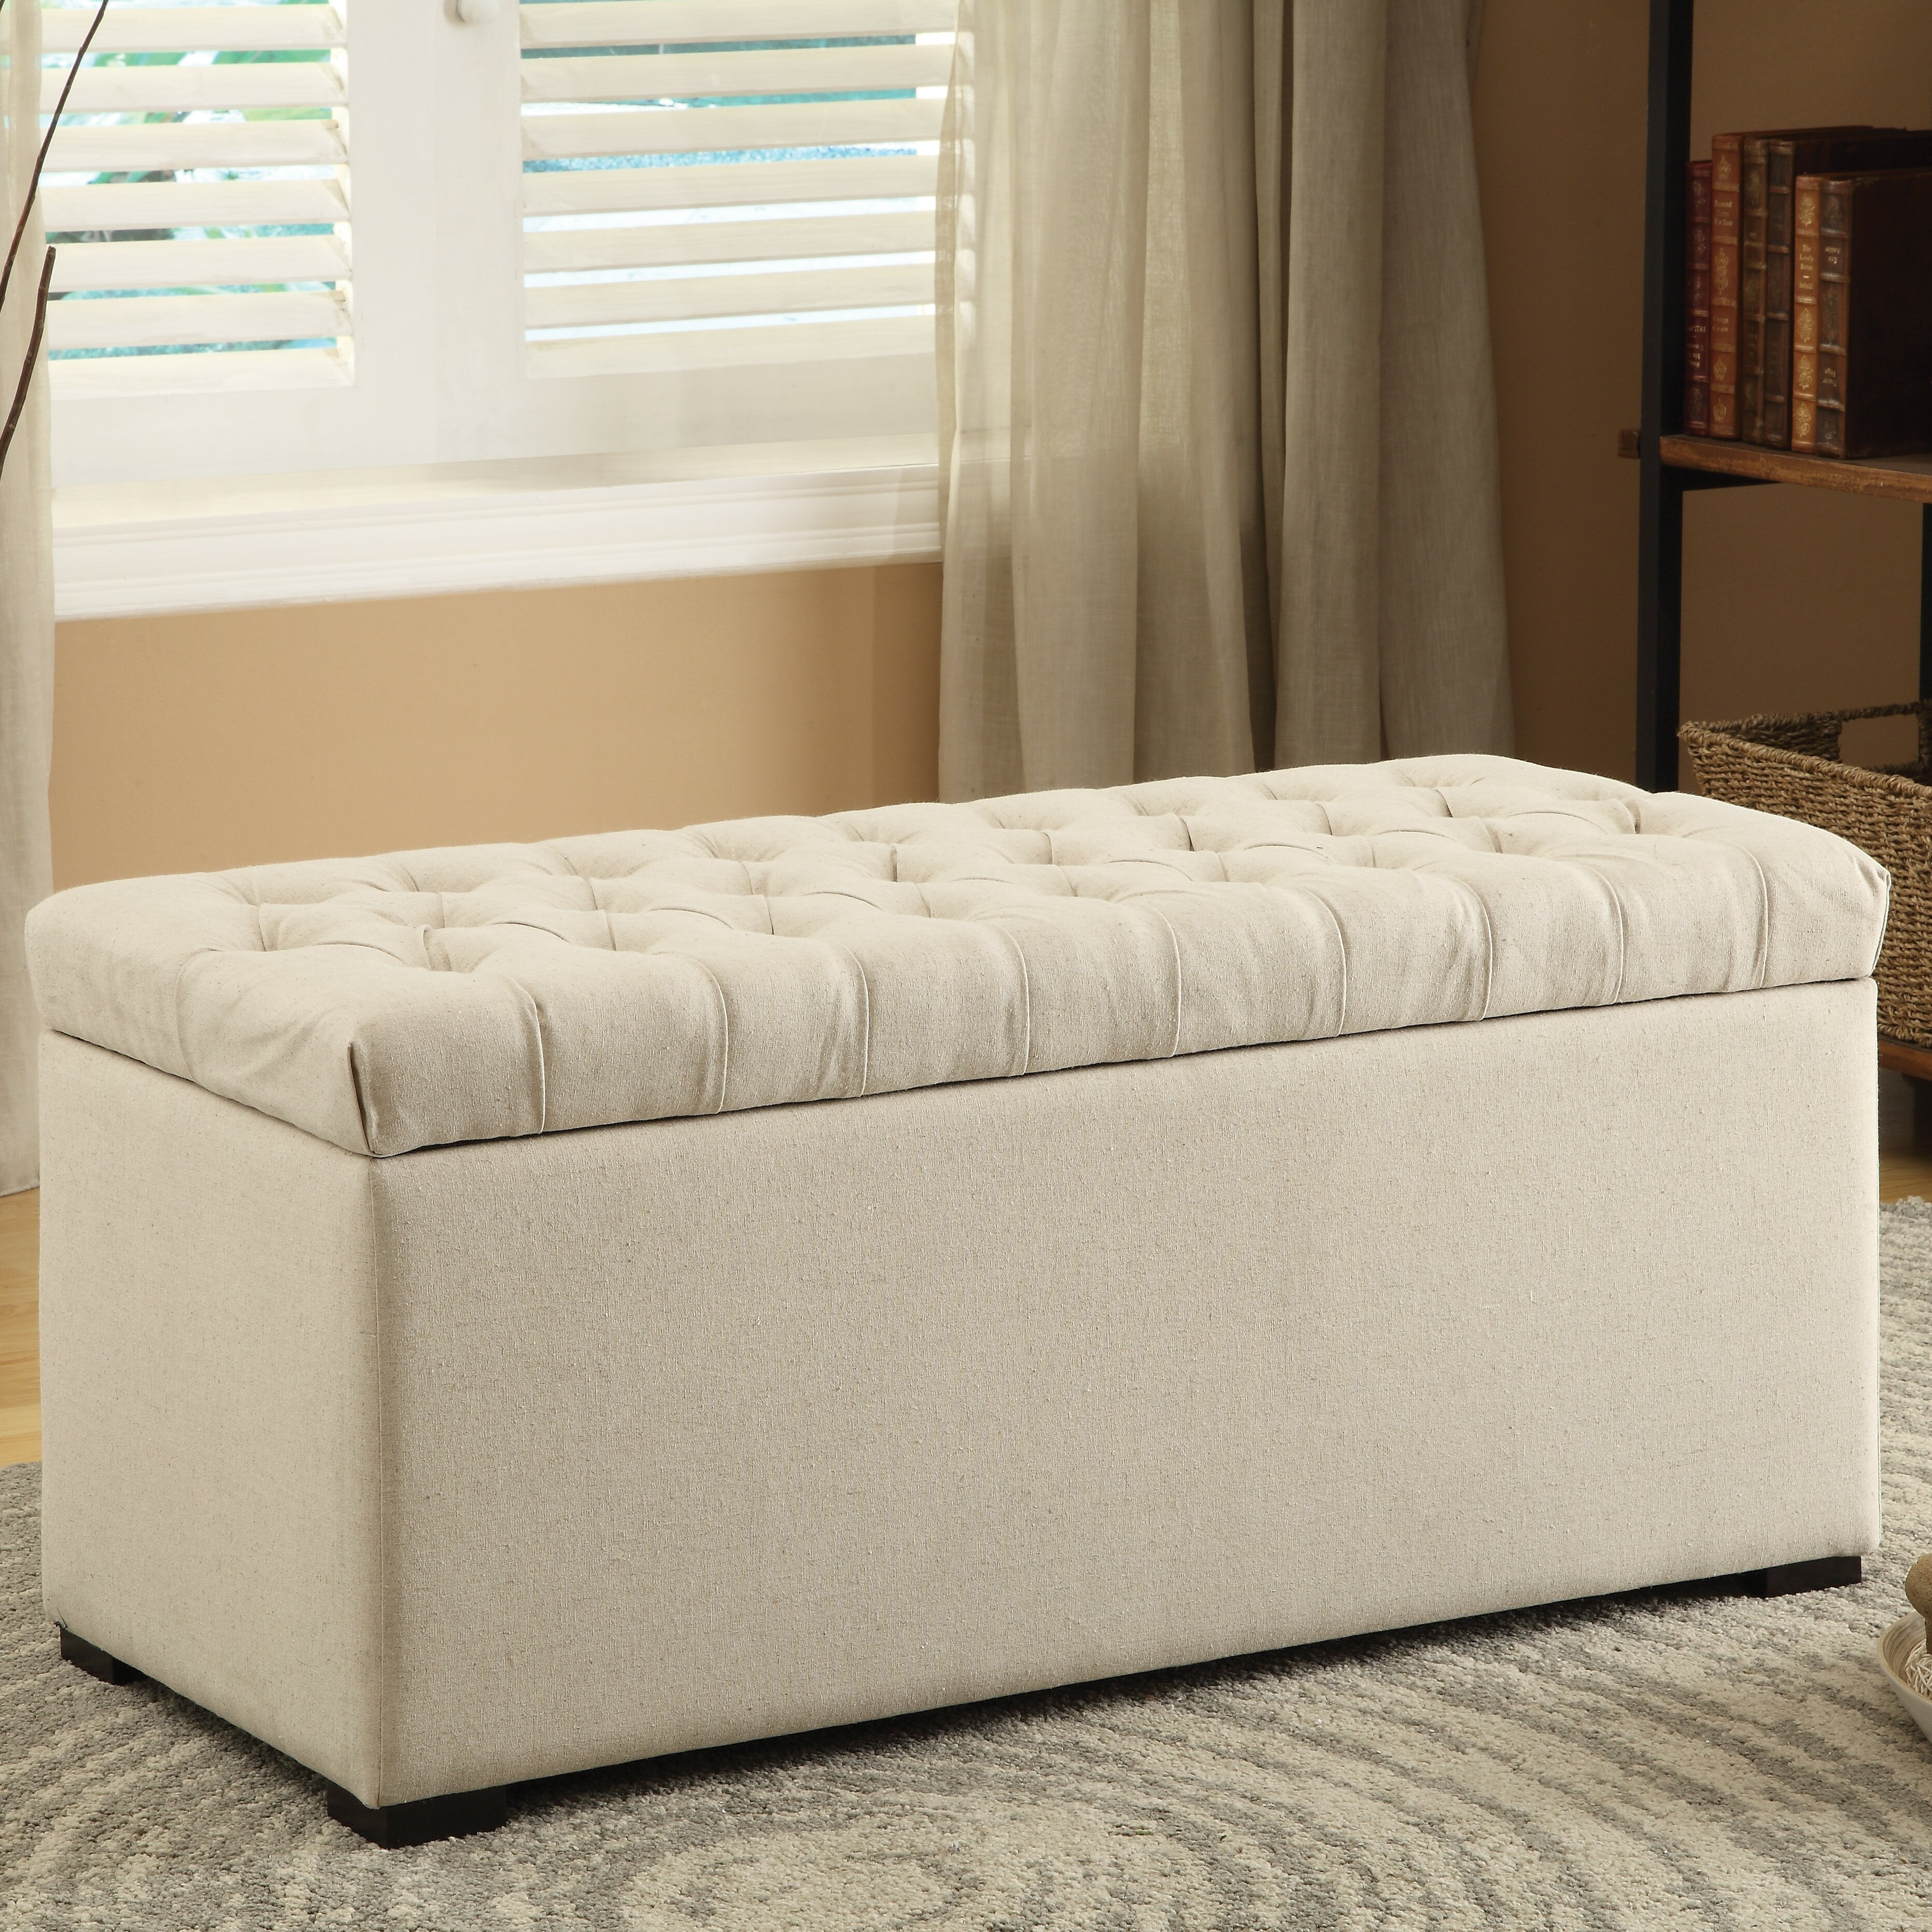 charlton home taunton one seat wood storage bedroom bench reviews wayfair. Black Bedroom Furniture Sets. Home Design Ideas